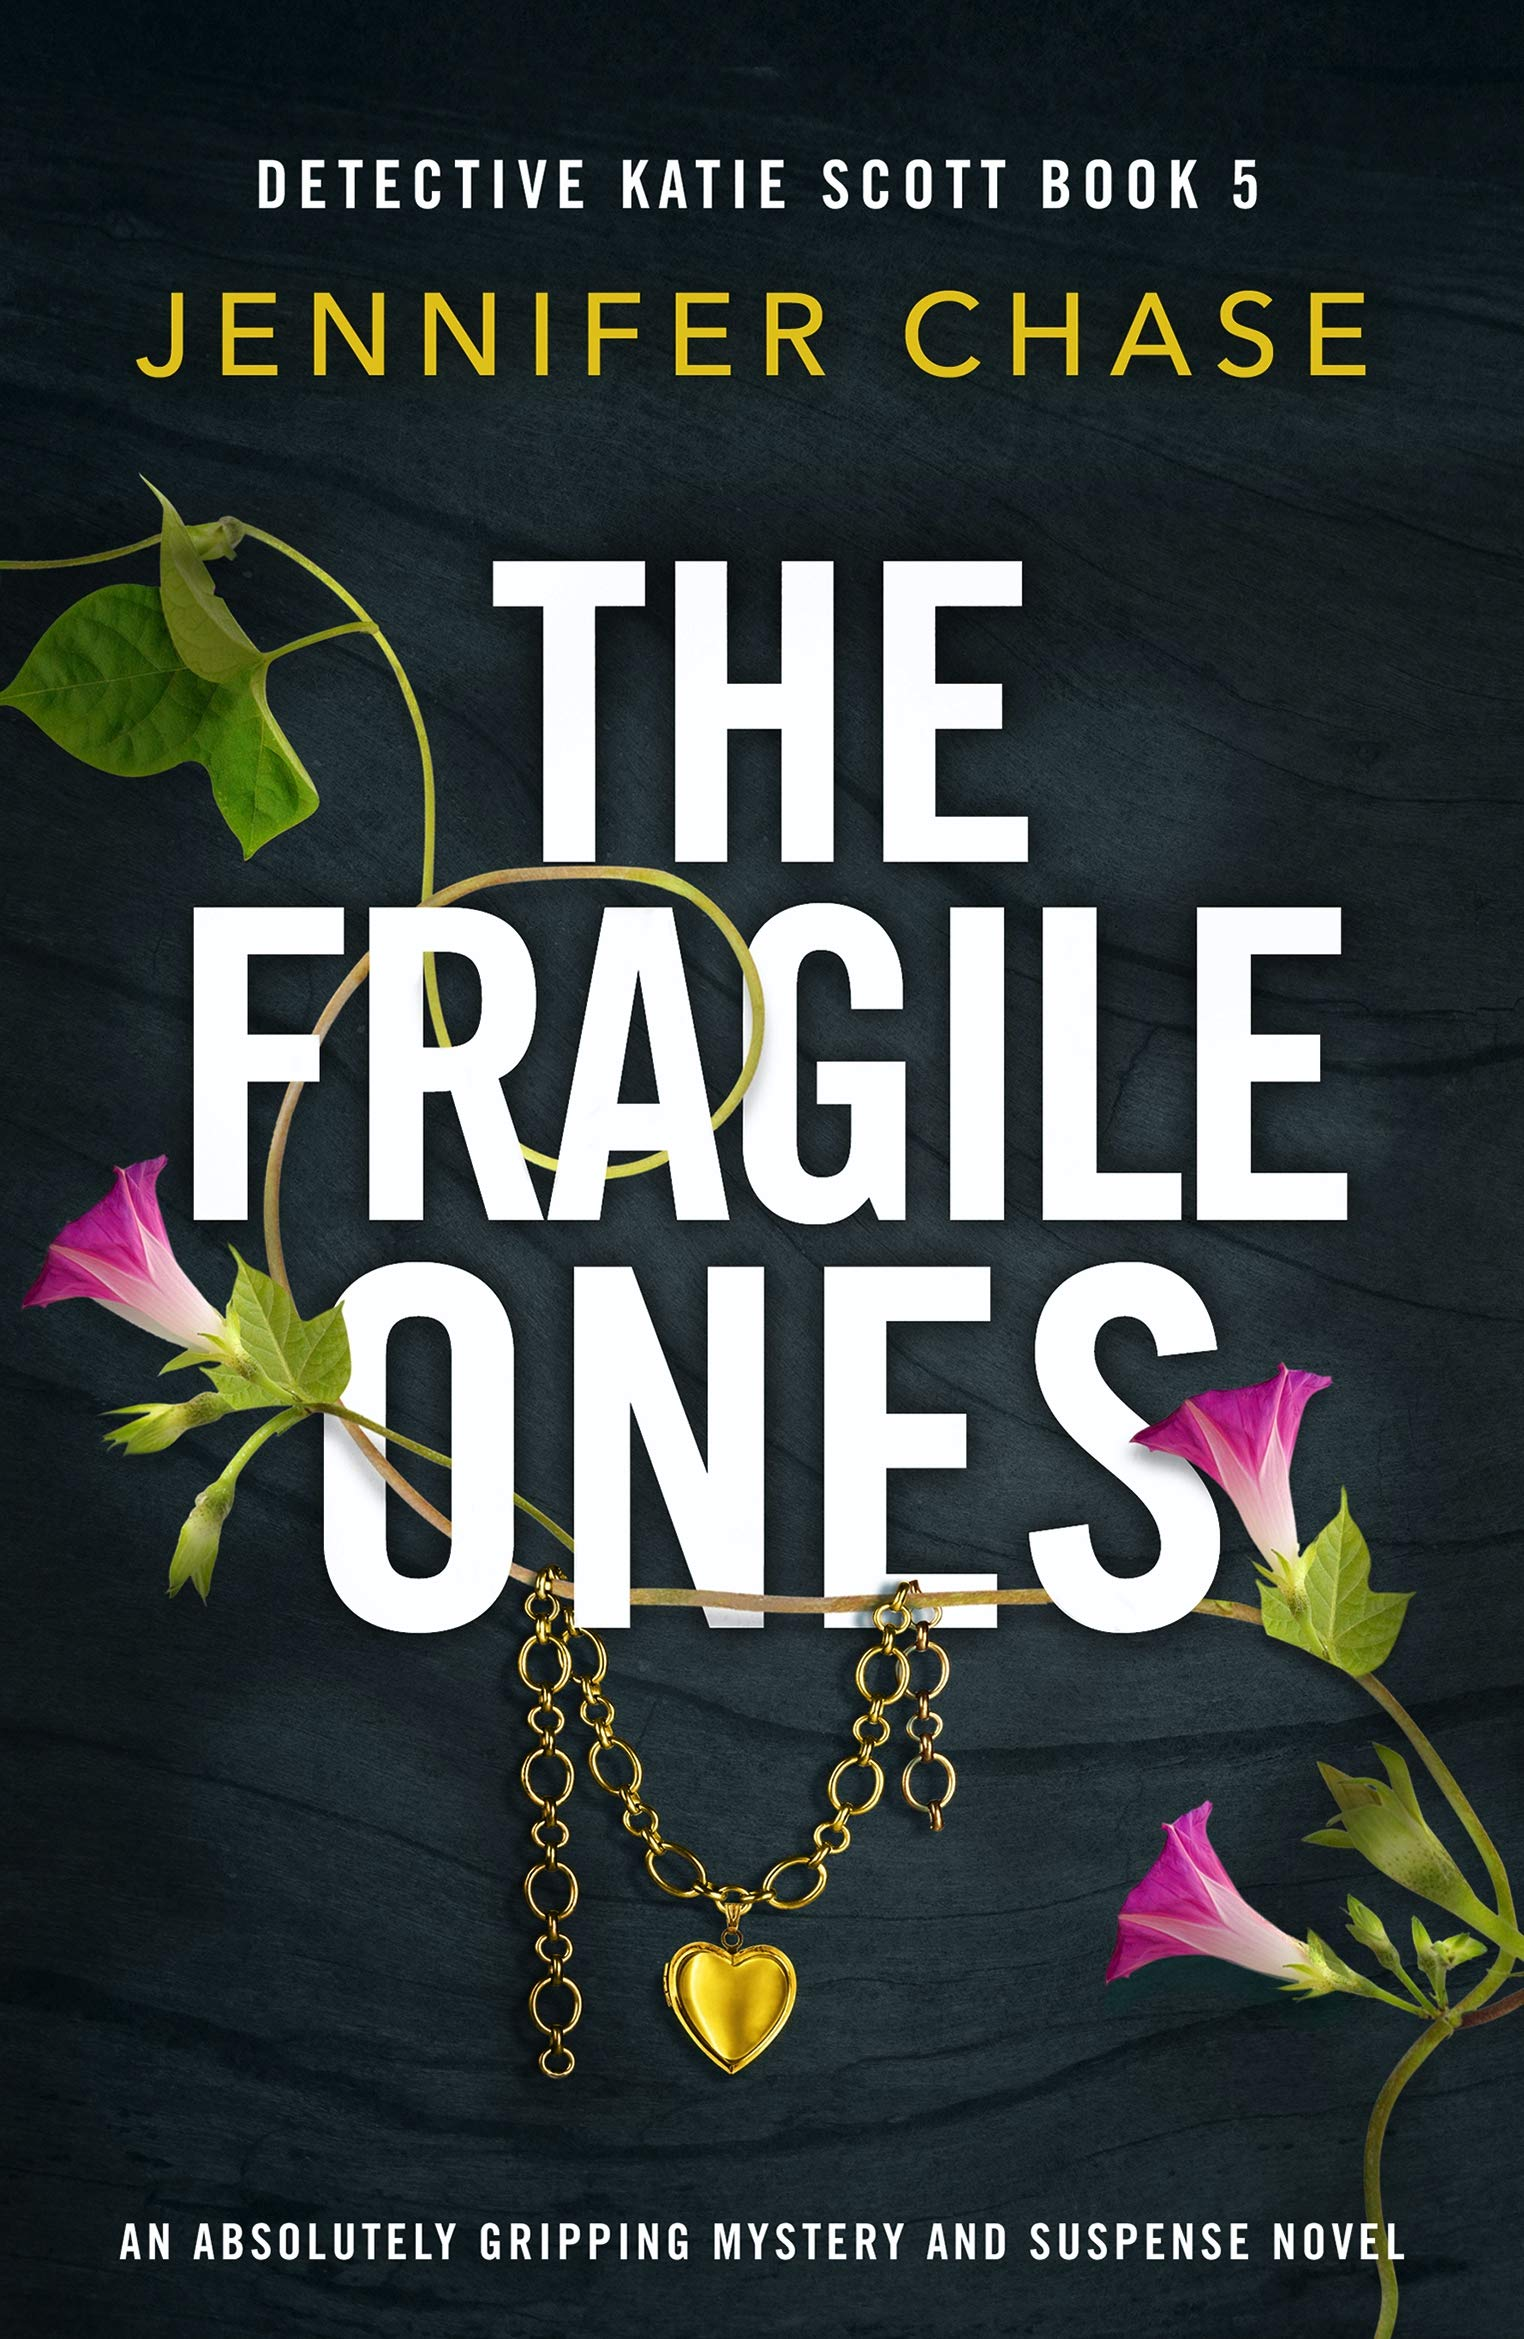 The Fragile Ones: An absolutely gripping mystery and suspense novel (Detective Katie Scott Book 5)